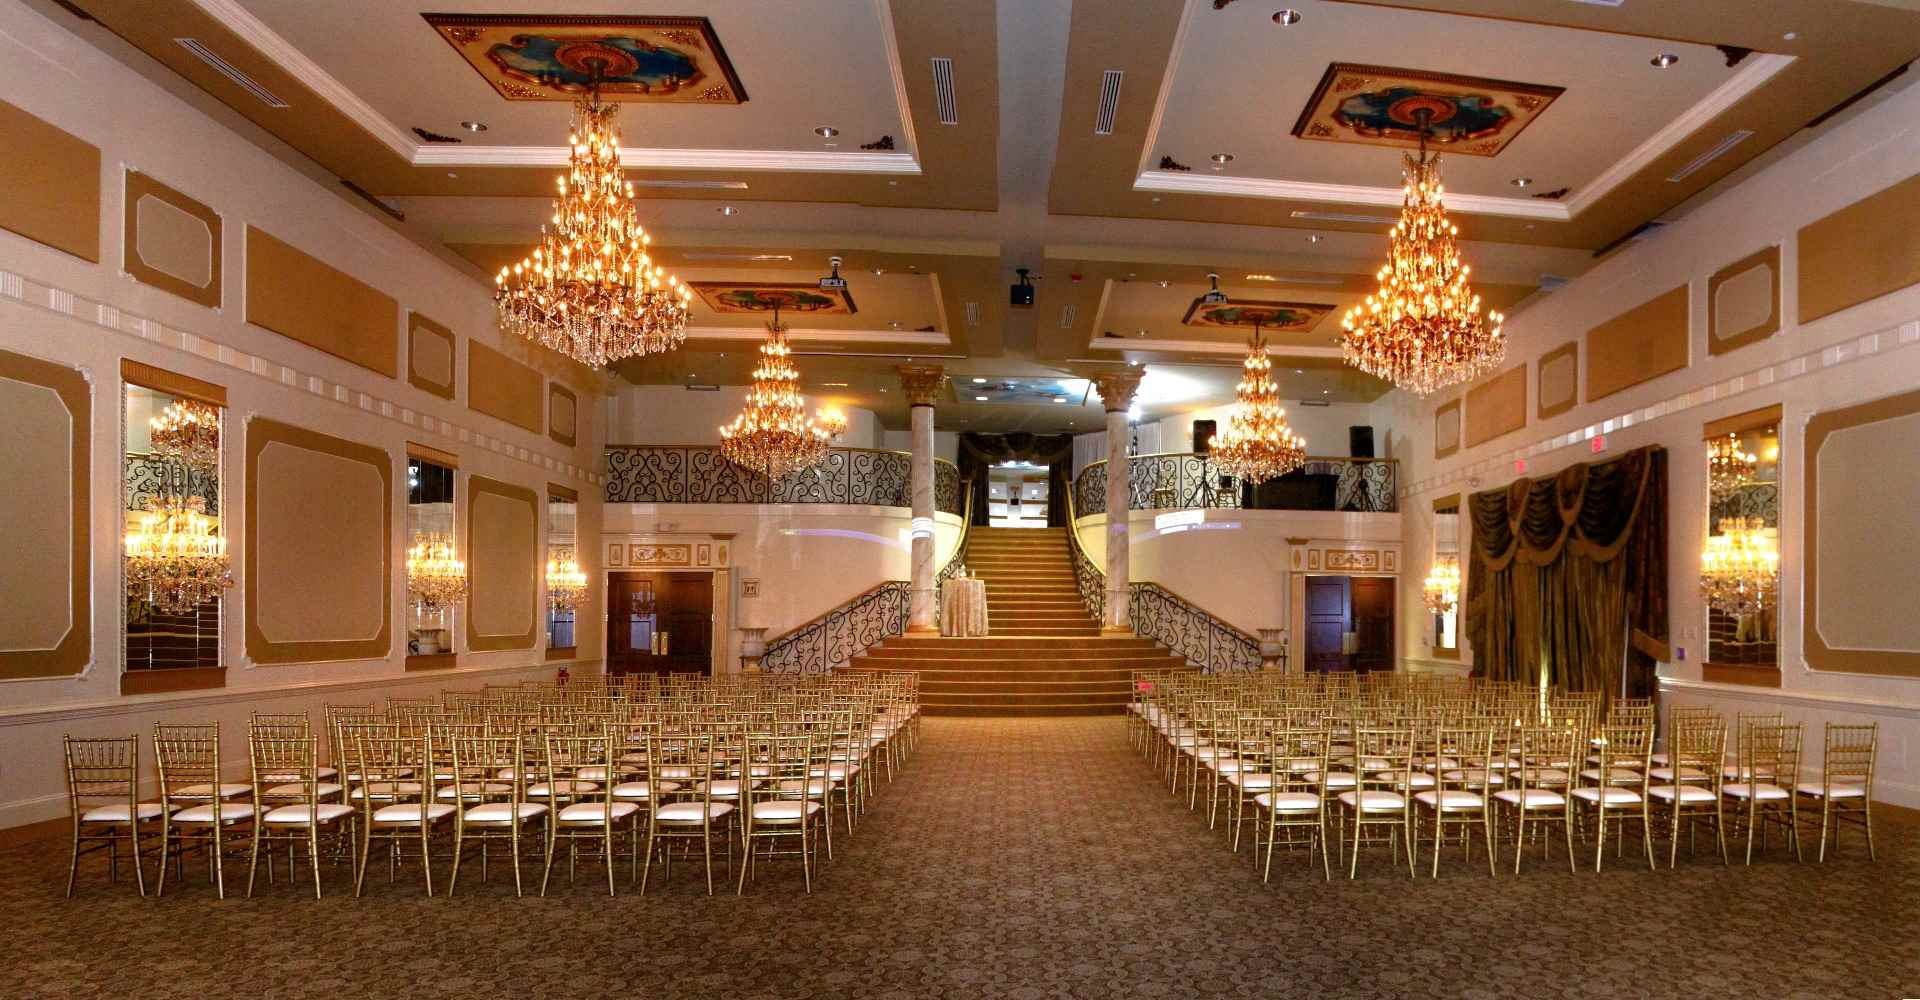 Beautiful wedding Venues near Raleigh